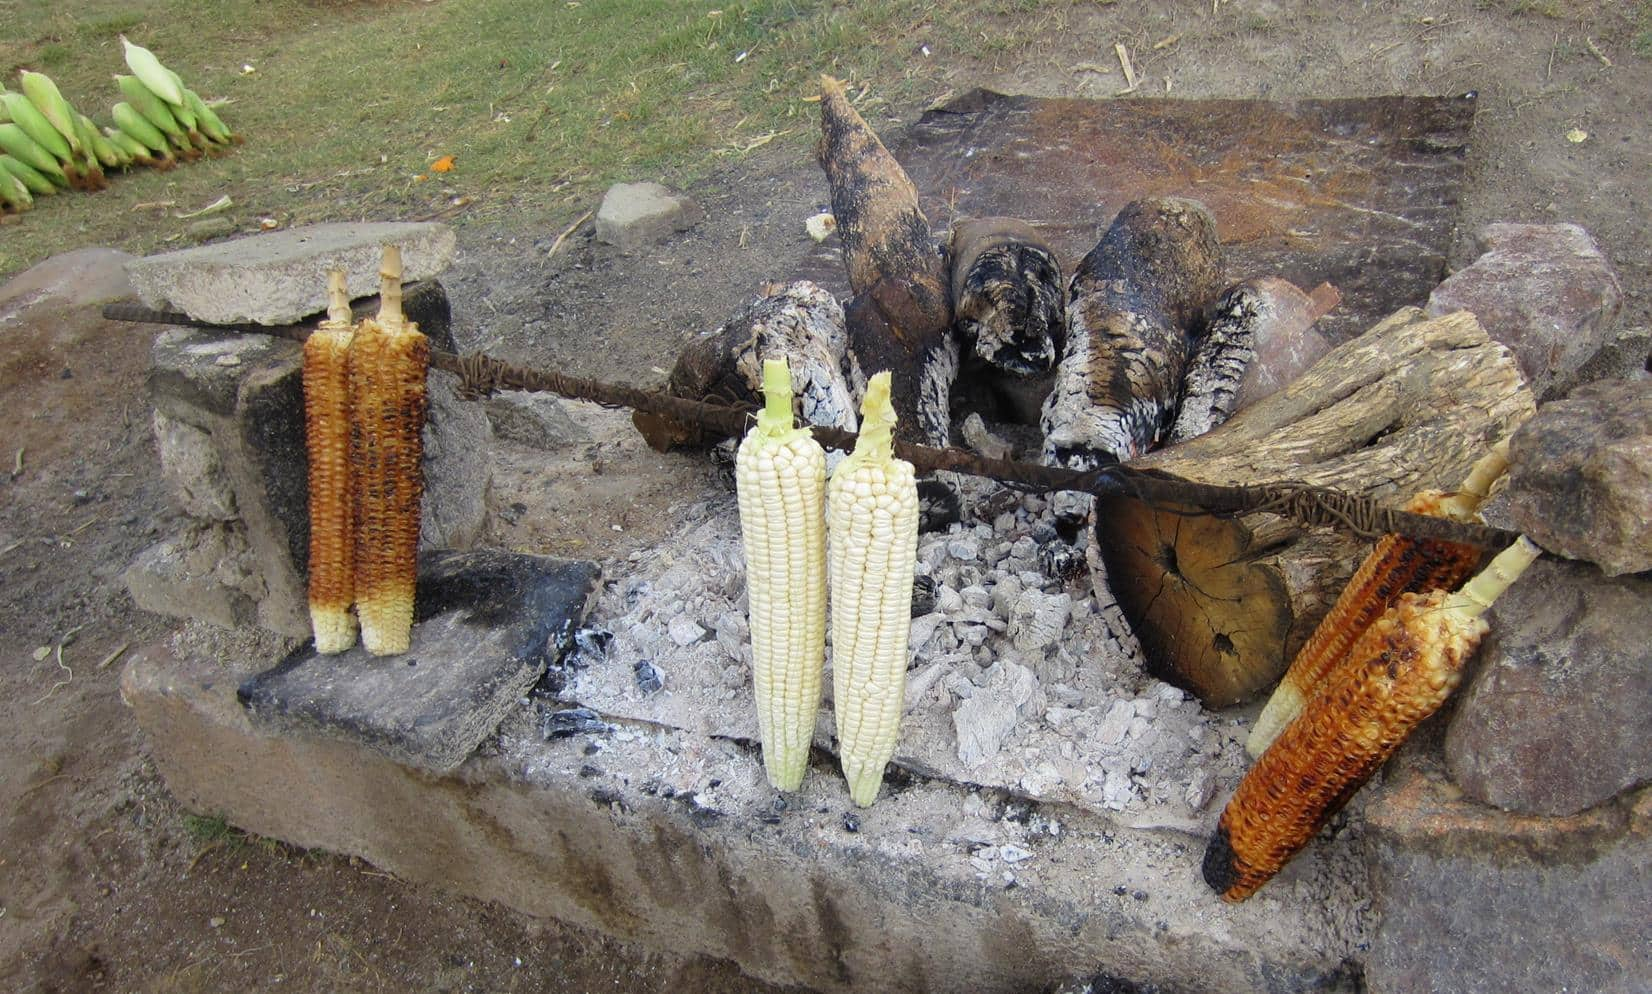 Take-away mealies (corn).